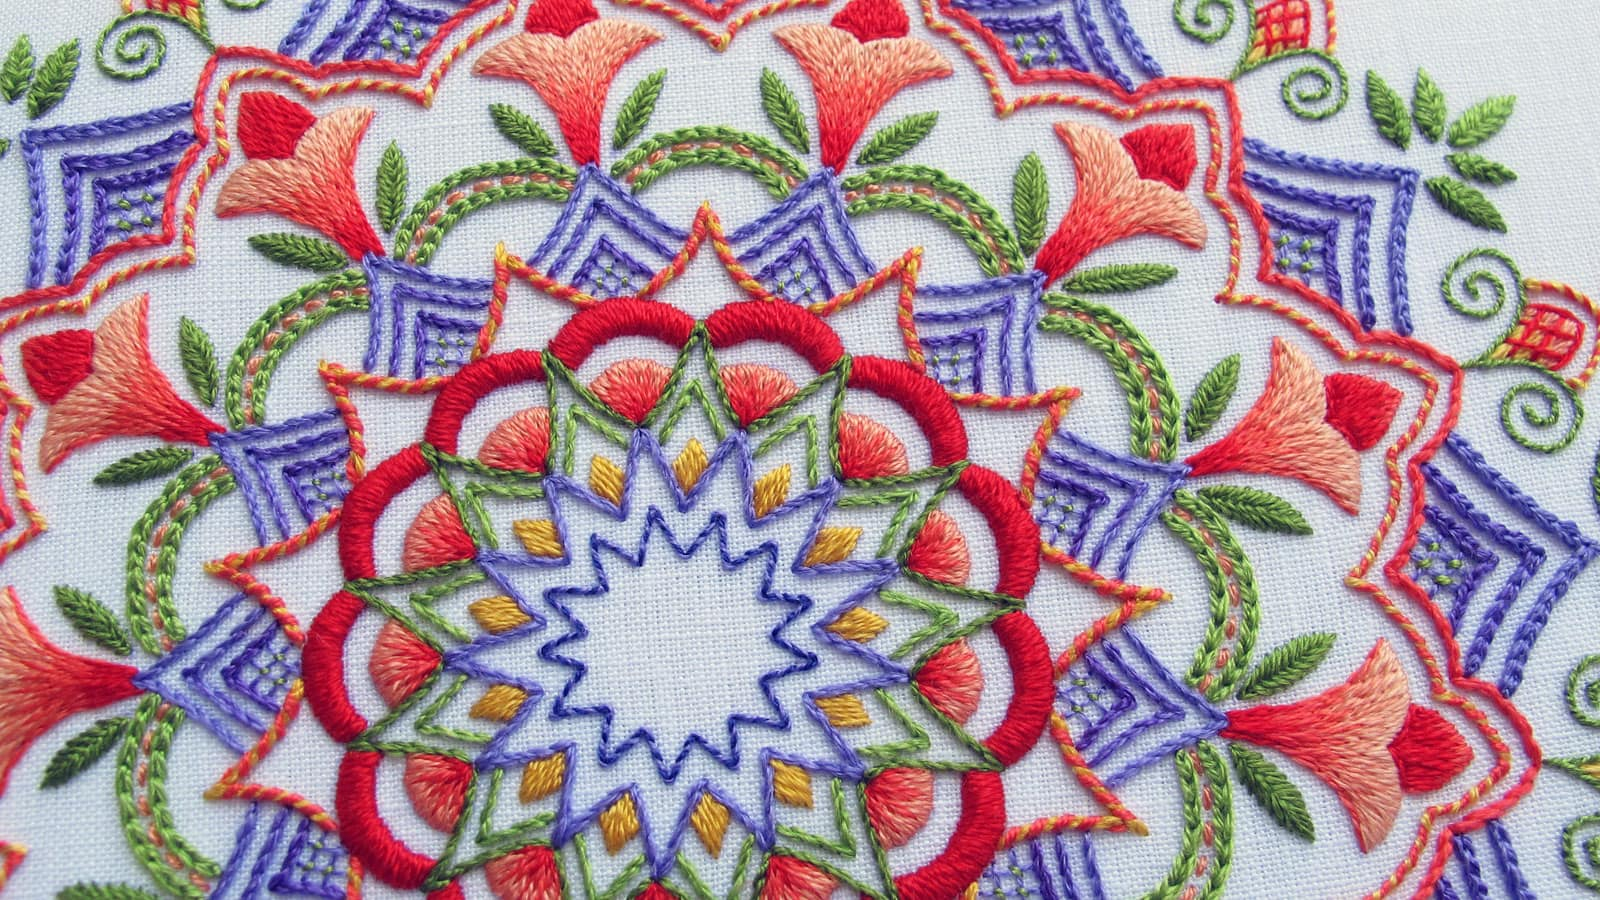 Free Christmas Embroidery Patterns Needlenthread Tips Tricks And Great Resources For Hand Embroidery